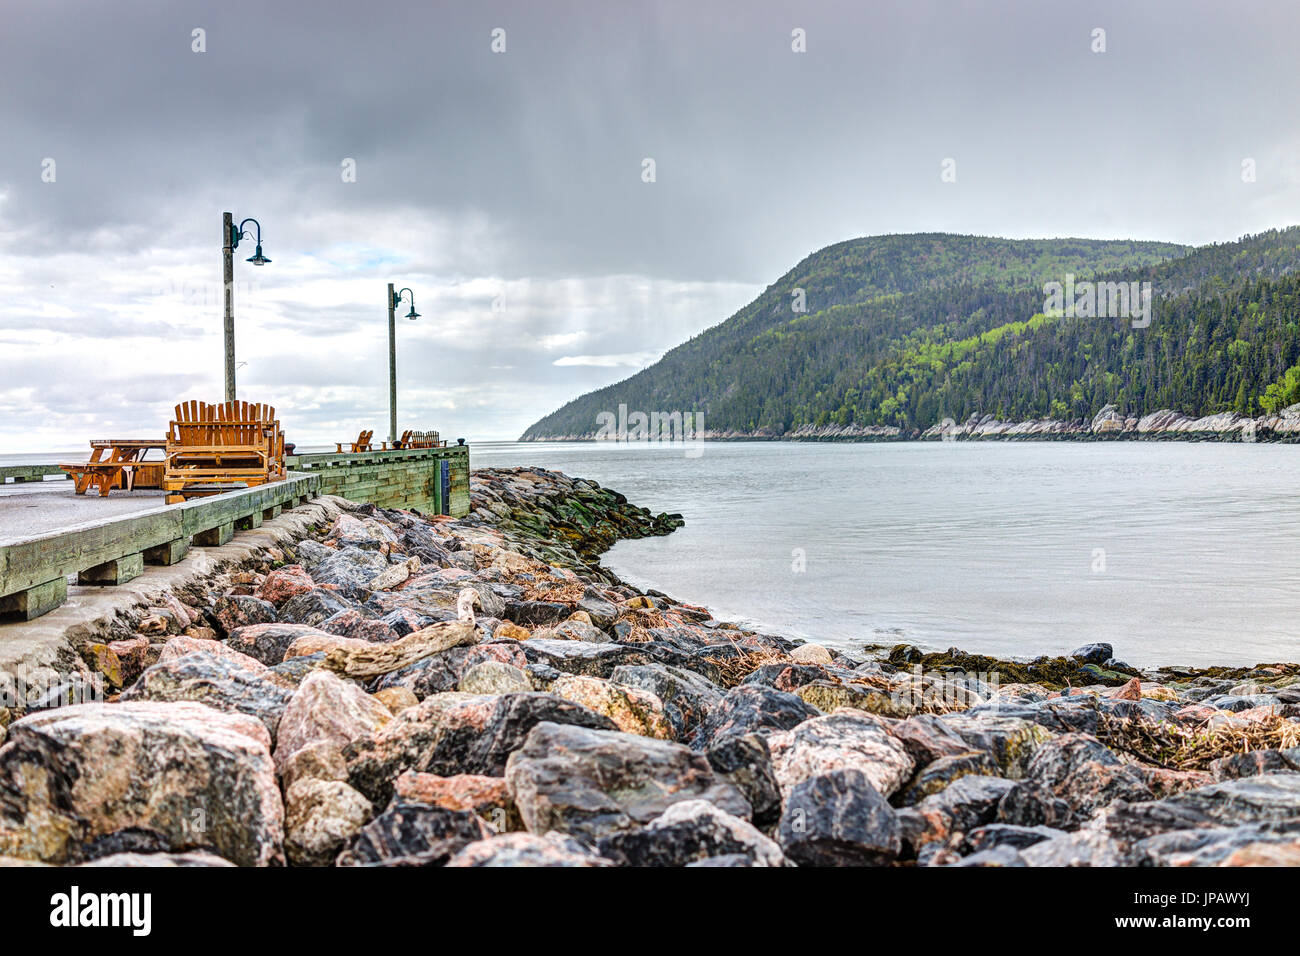 Port-au-Persil pier in Quebec, Canada Charlevoix region during stormy rainy day with Saint Lawrence river Stock Photo